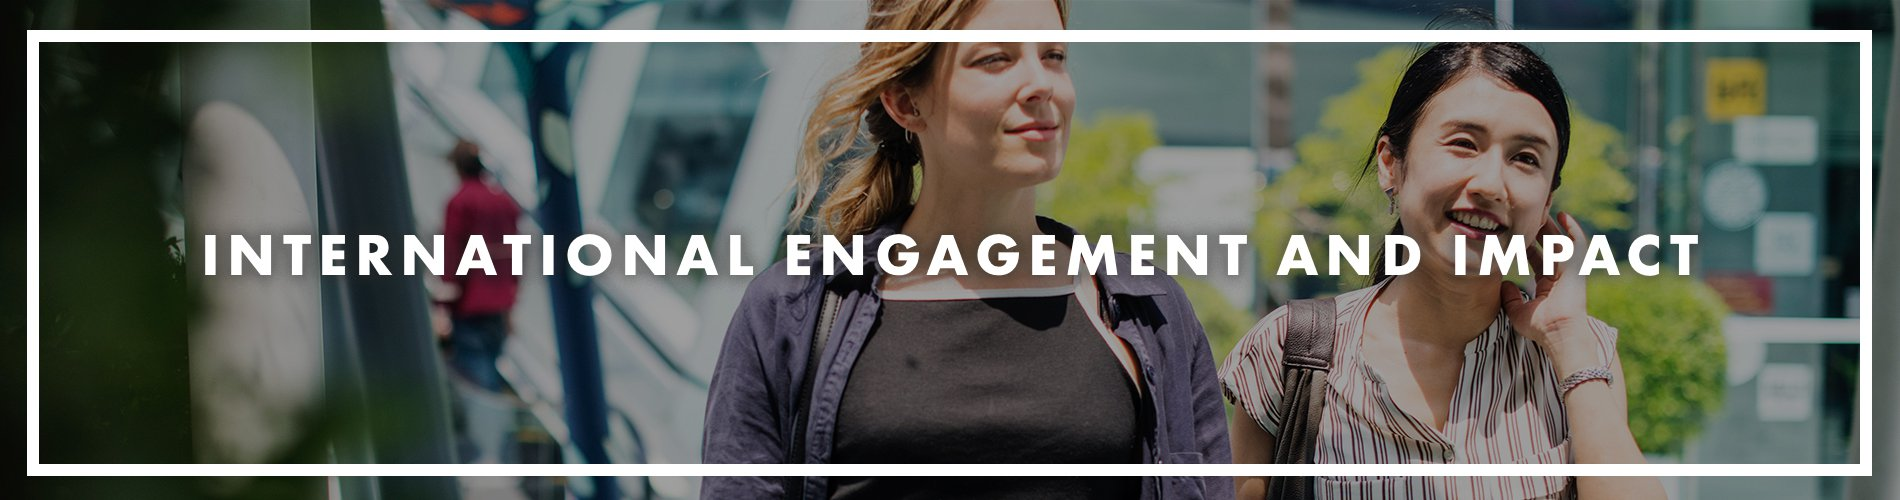 Intl Engagement and Impact Header